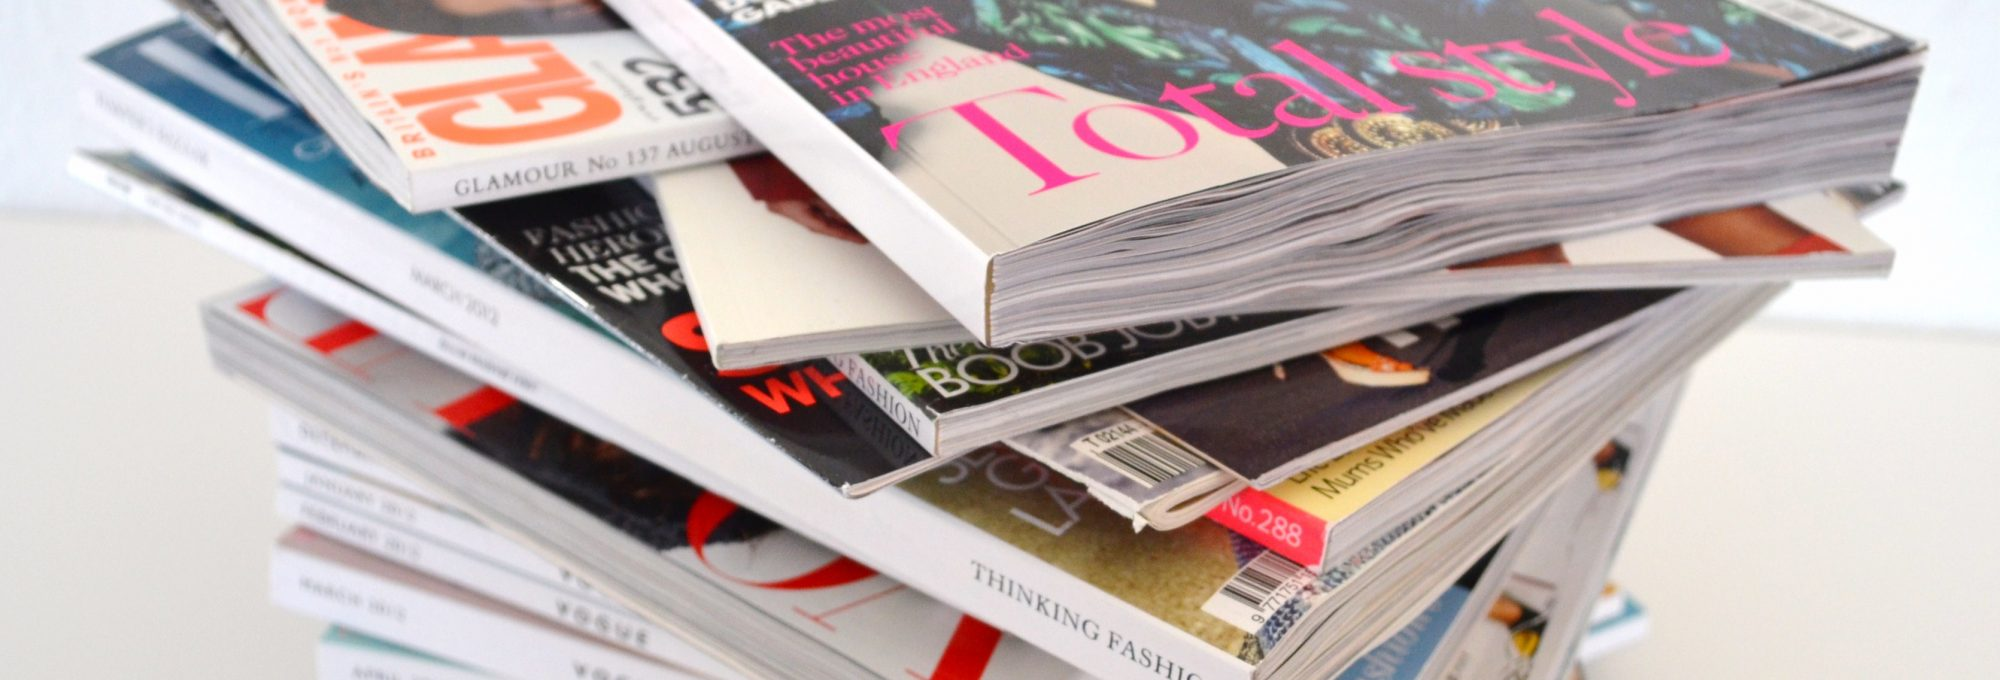 10 BEST HOME MAGAZINES YOU SHOULD ADD TO YOUR FAVORITES LIST